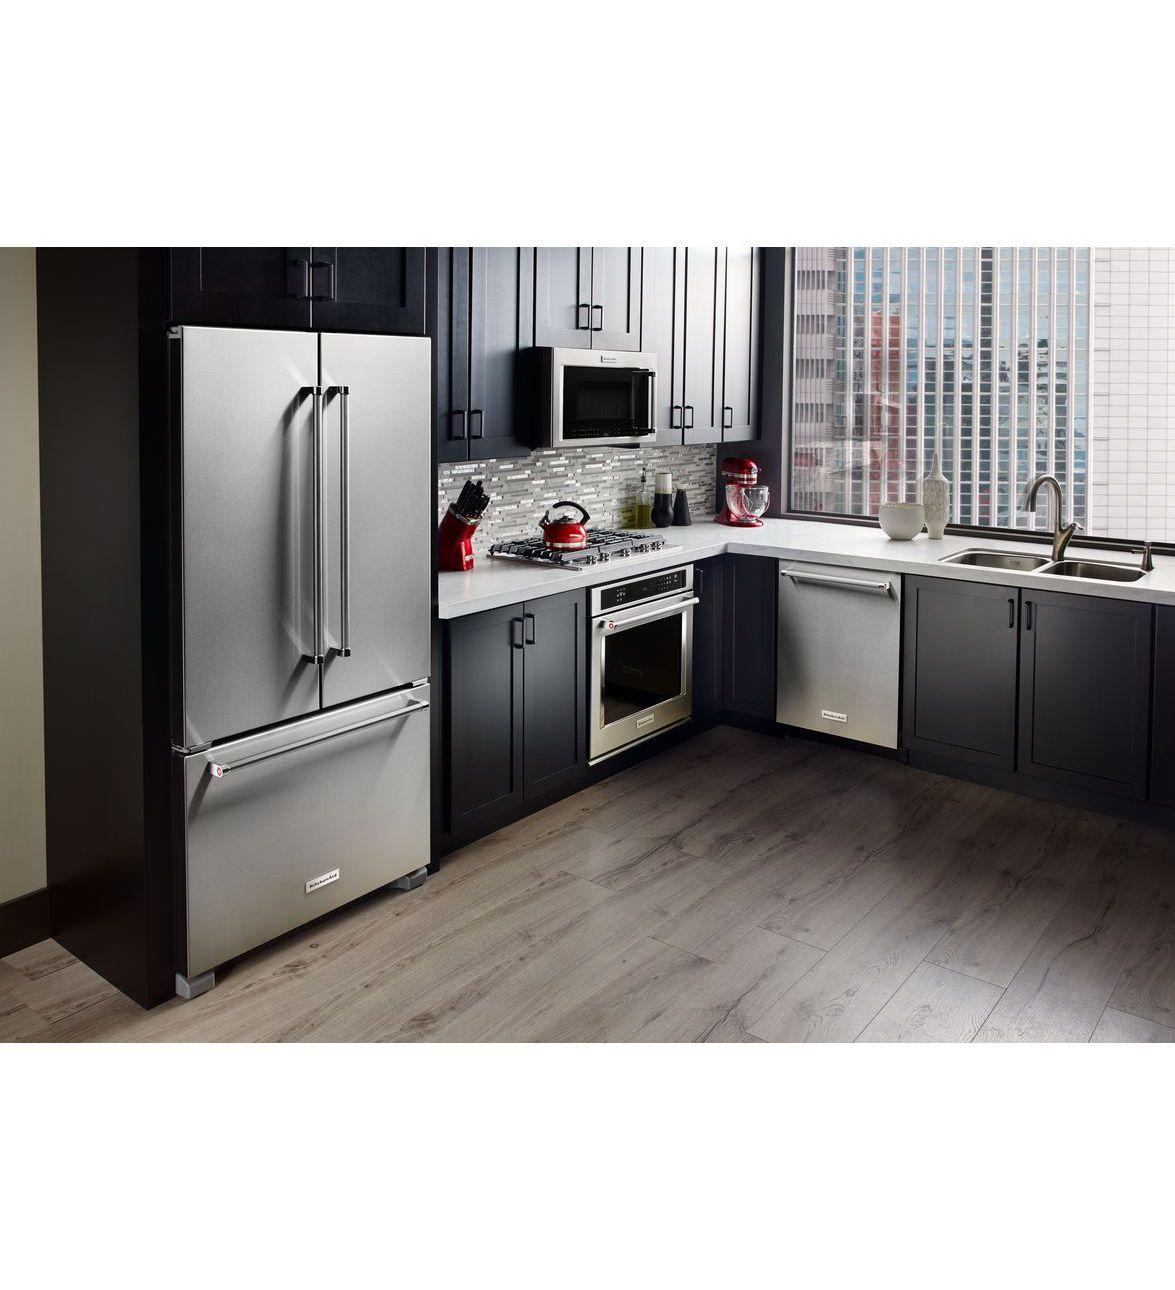 Krfc300e Kitchenaid Krfc300e Bottom Freezer Refrigerators